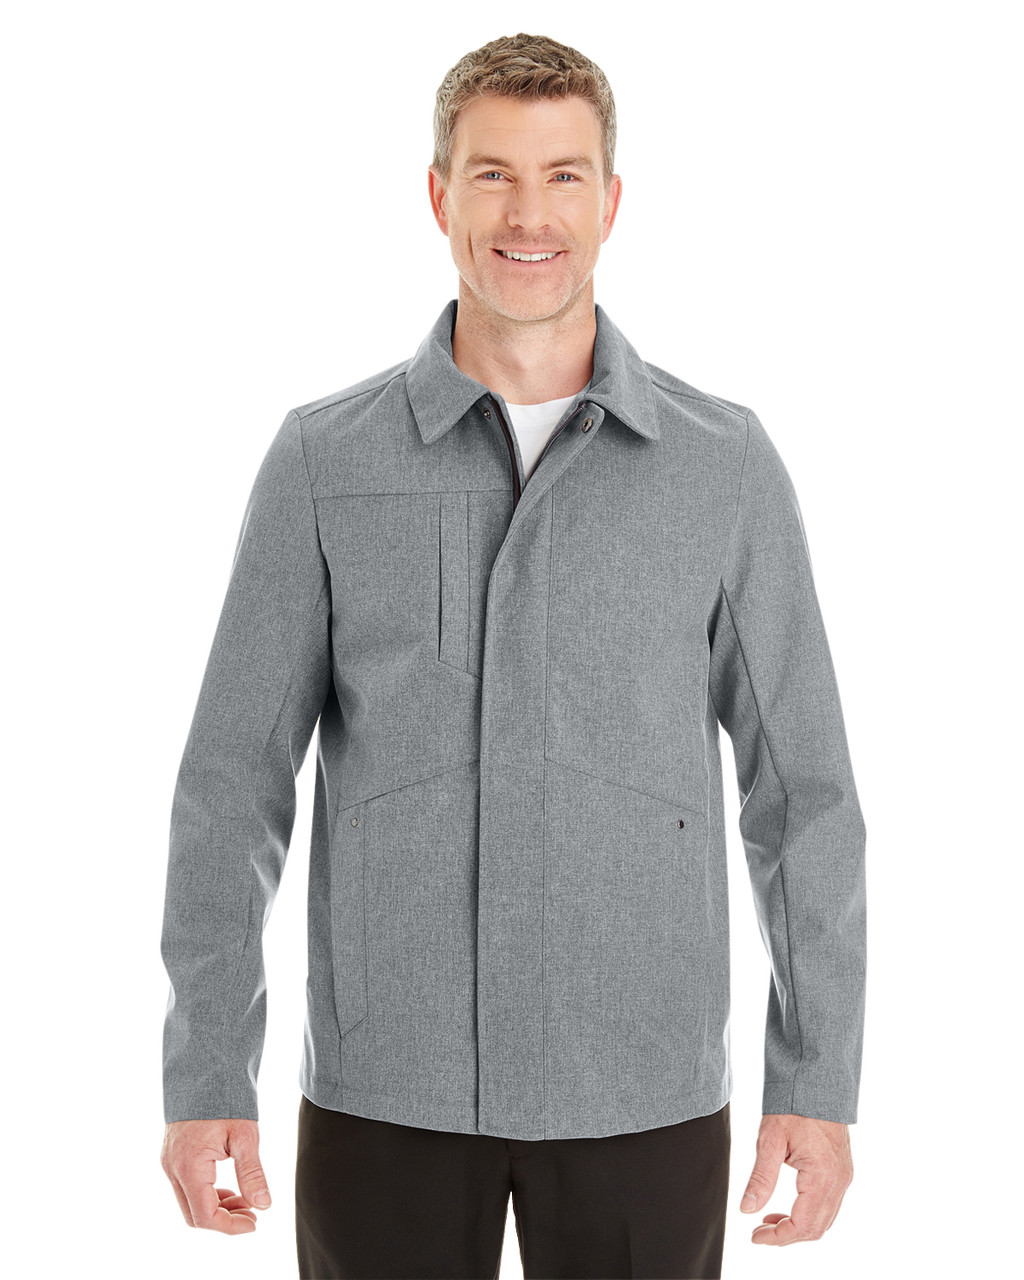 City Grey - Front- NE705 Ash City - North End Men's Edge Soft Shell Jacket with Fold-Down Collar   Blankclothing.ca